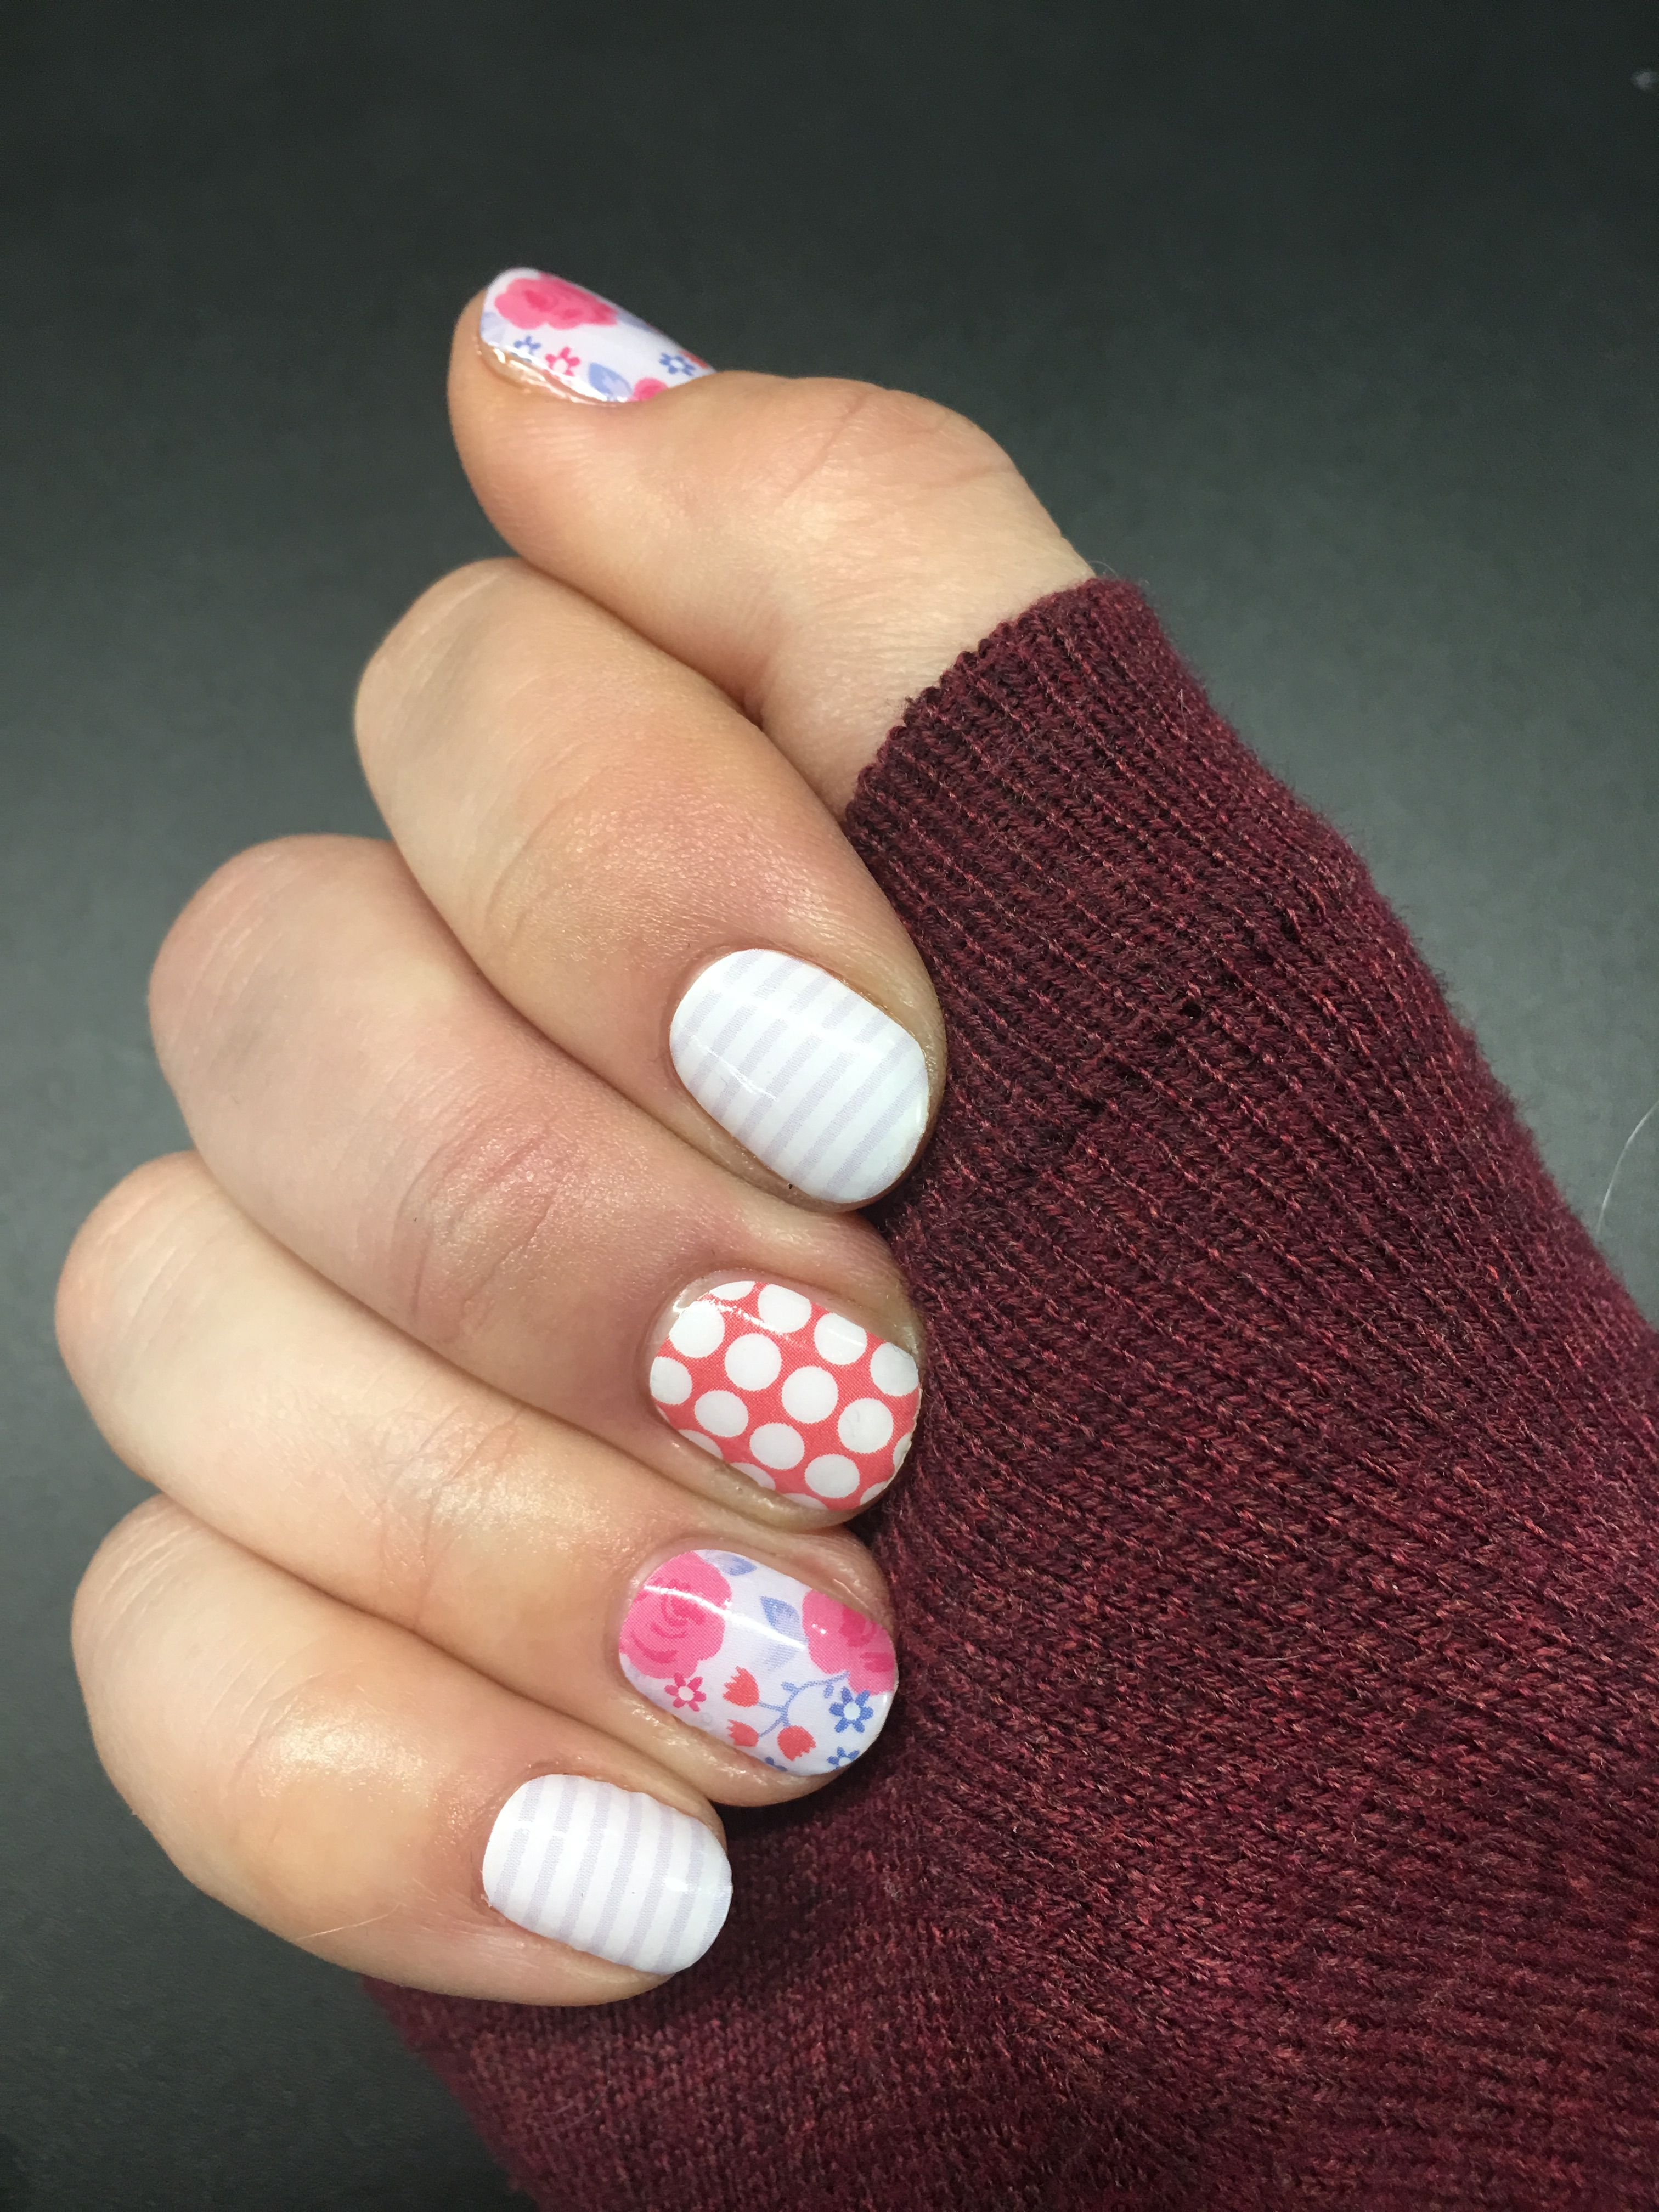 Nothing says Autumn like a pumpkin spice latte...or a spicy manicure like